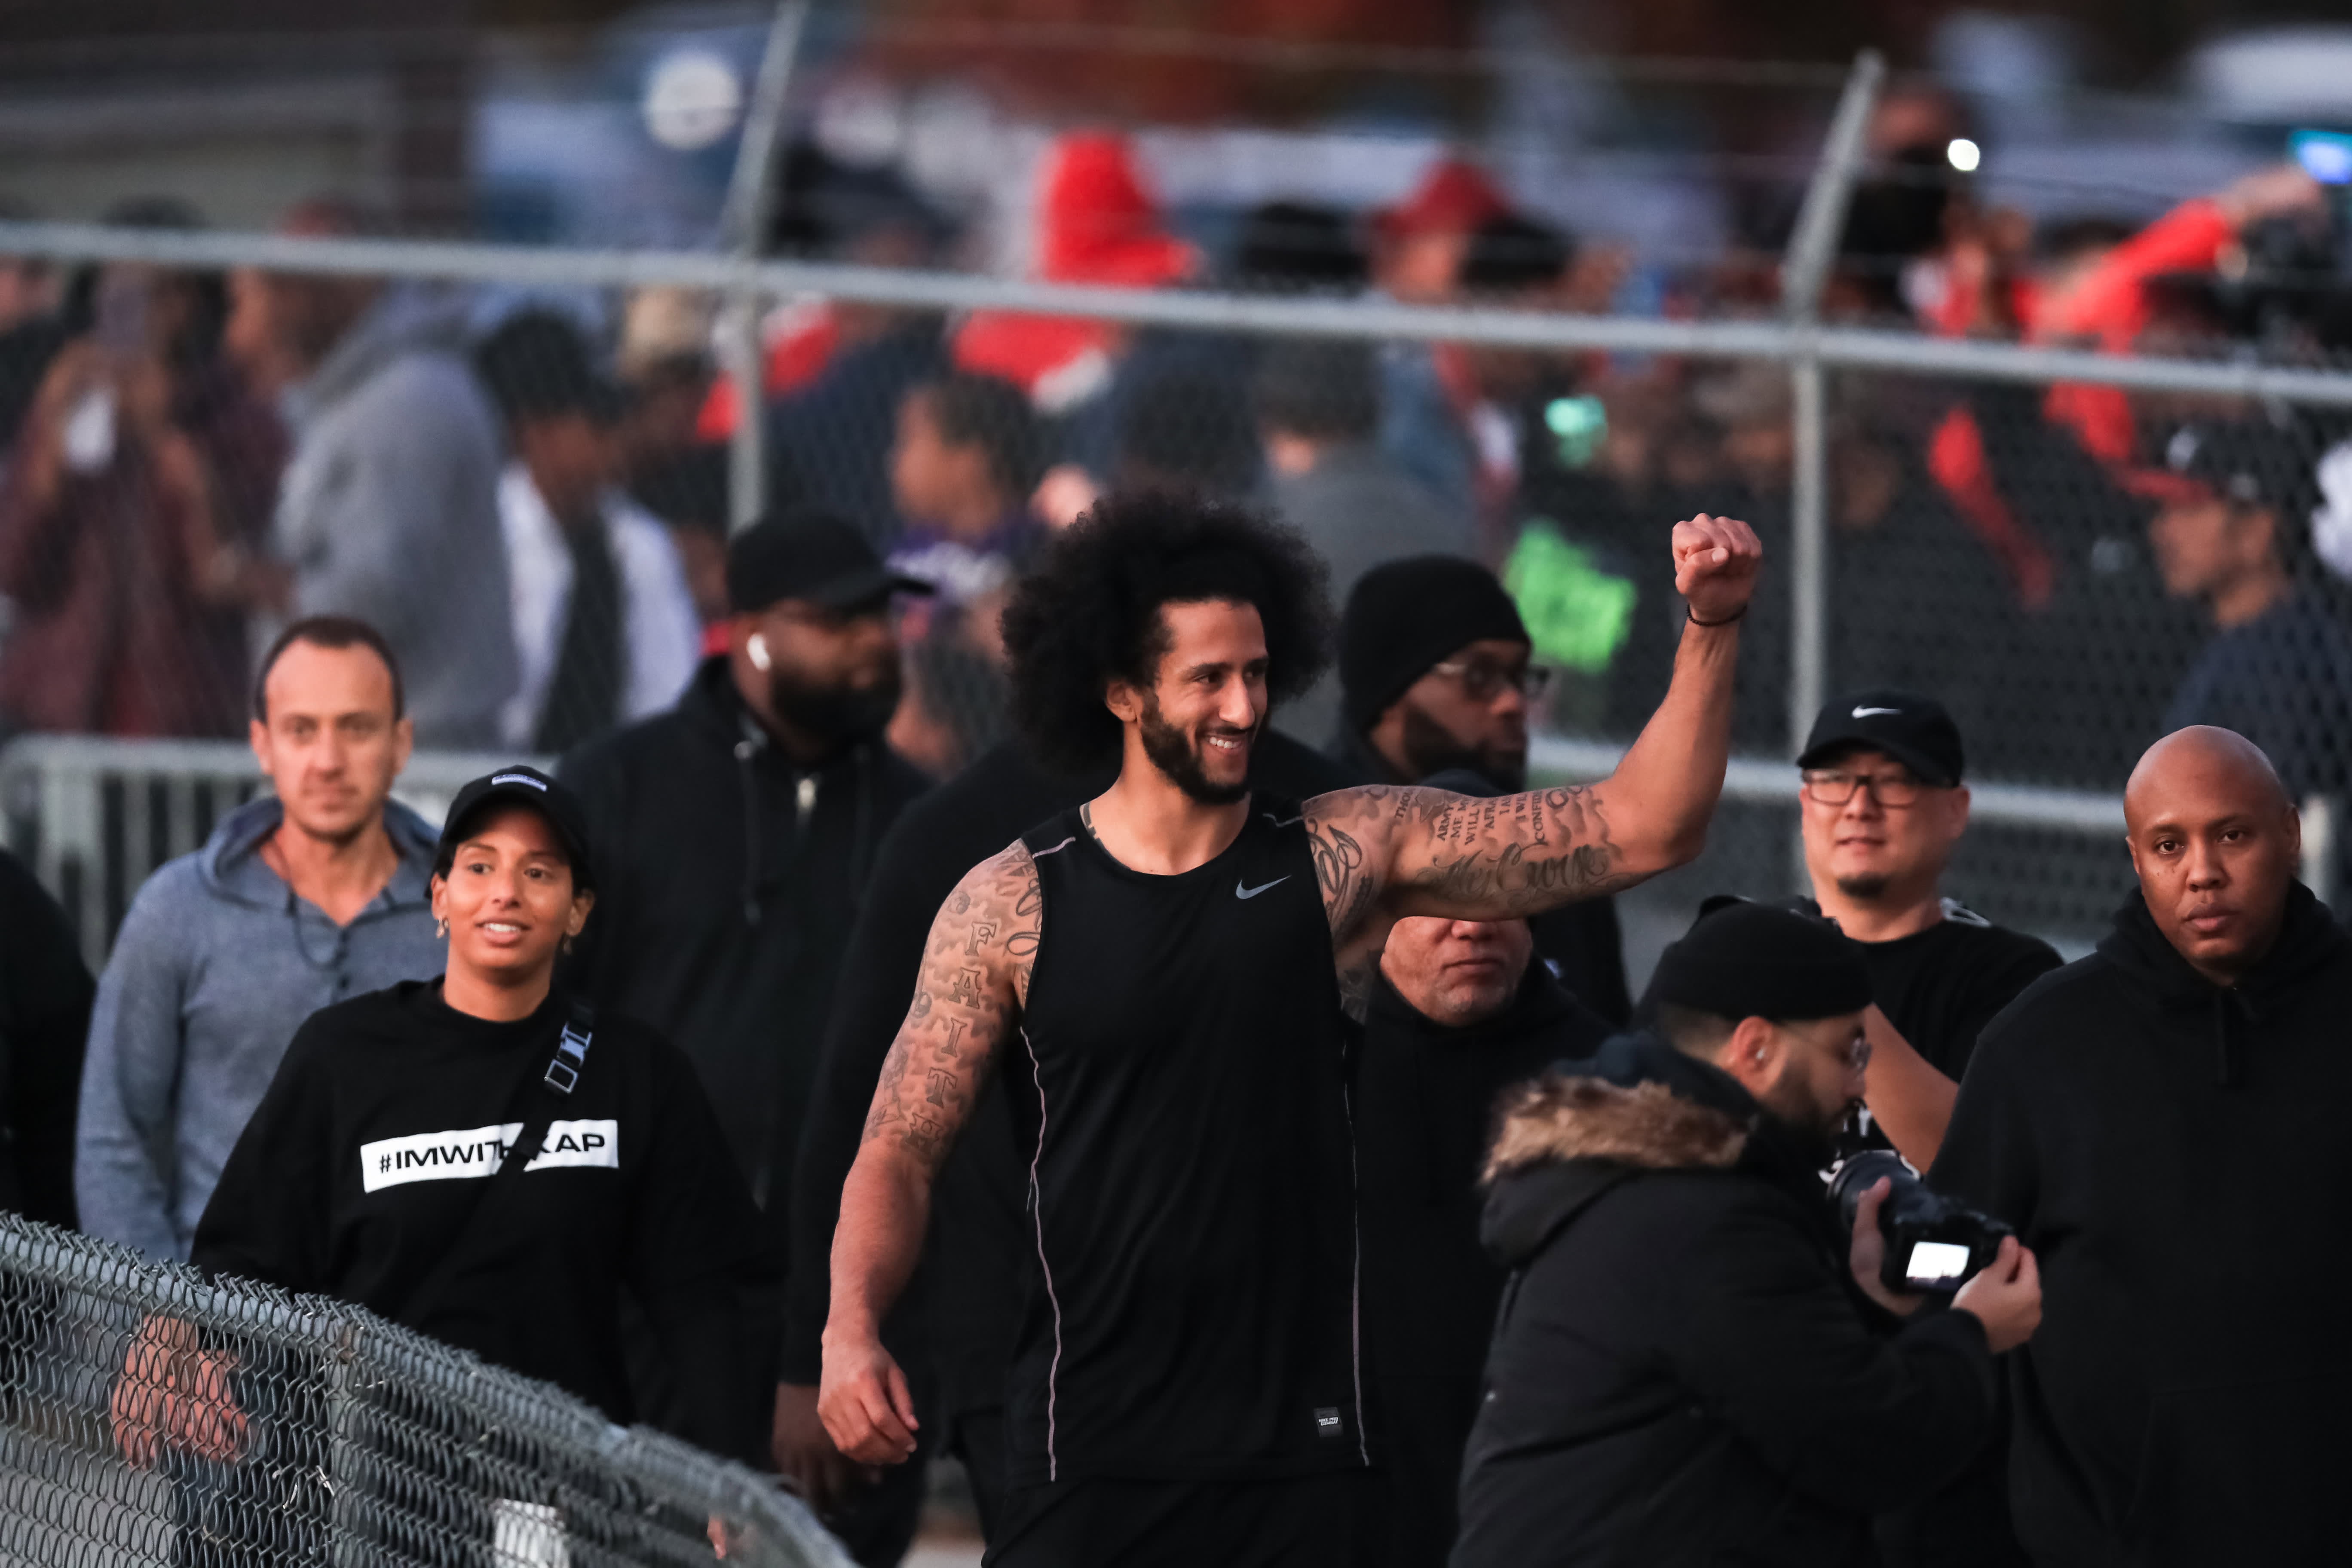 Colin Kaepernick's botched NFL workout could strengthen case for second collusion lawsuit